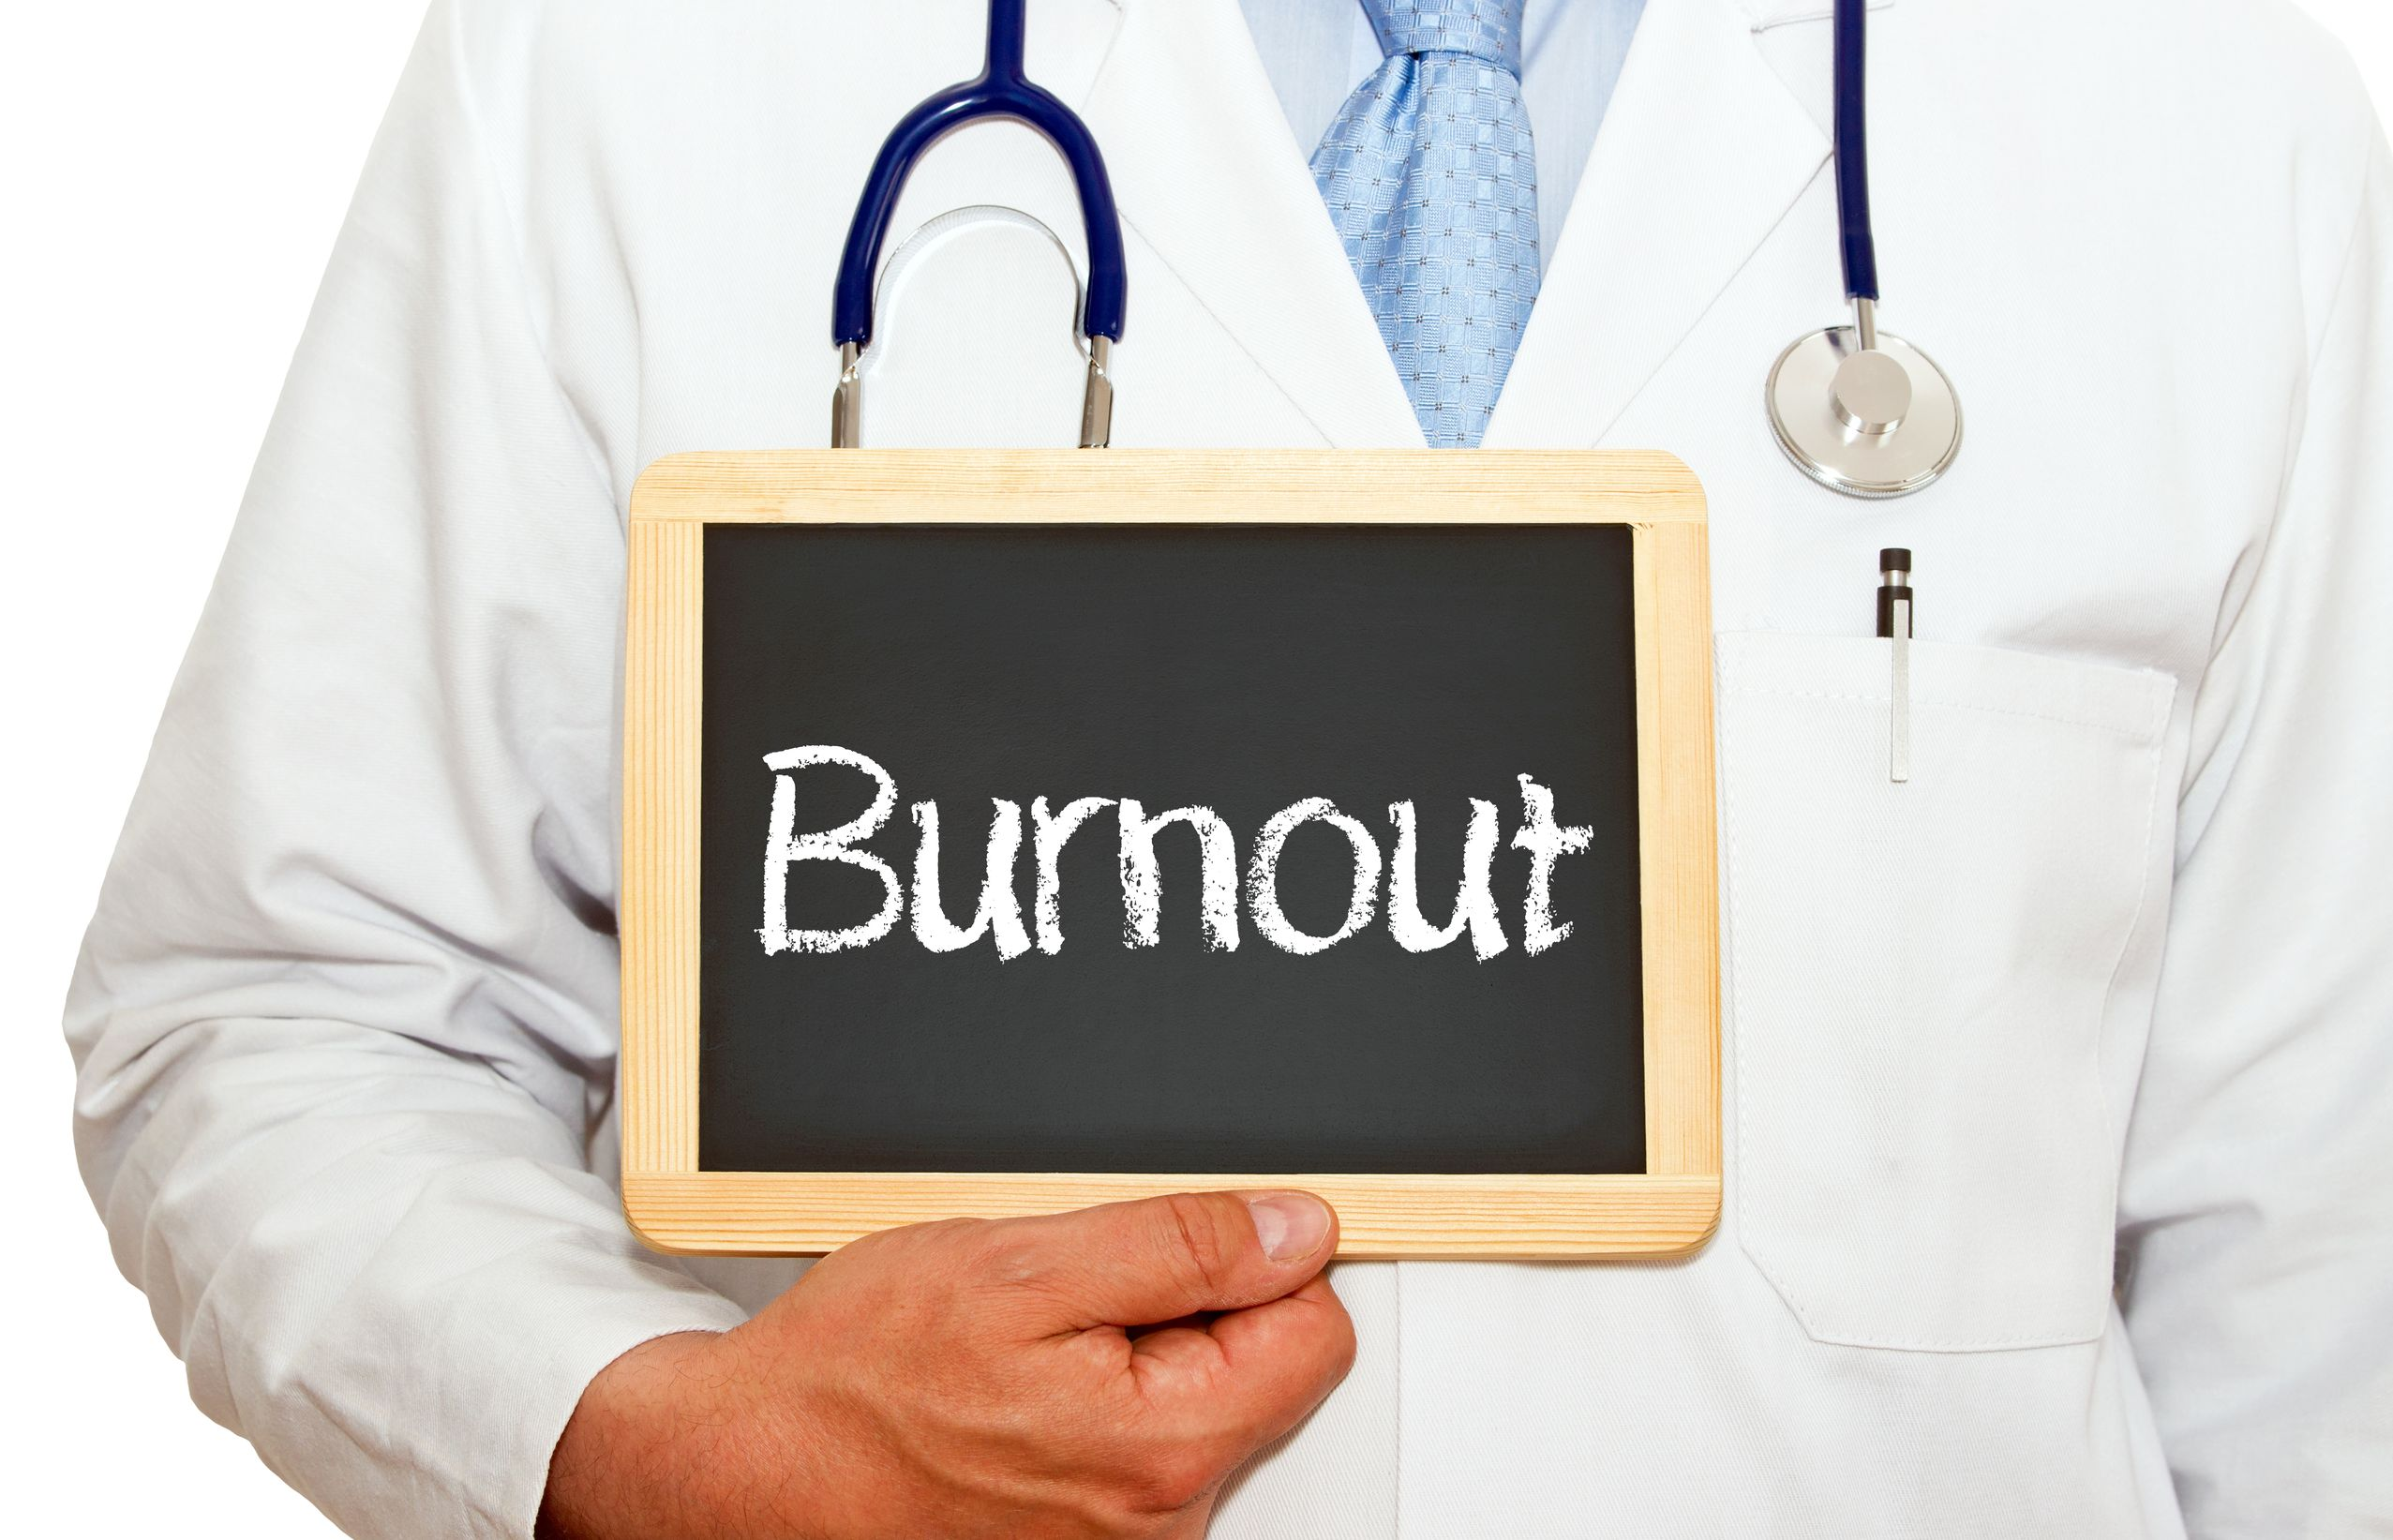 Burnout is a medical condition